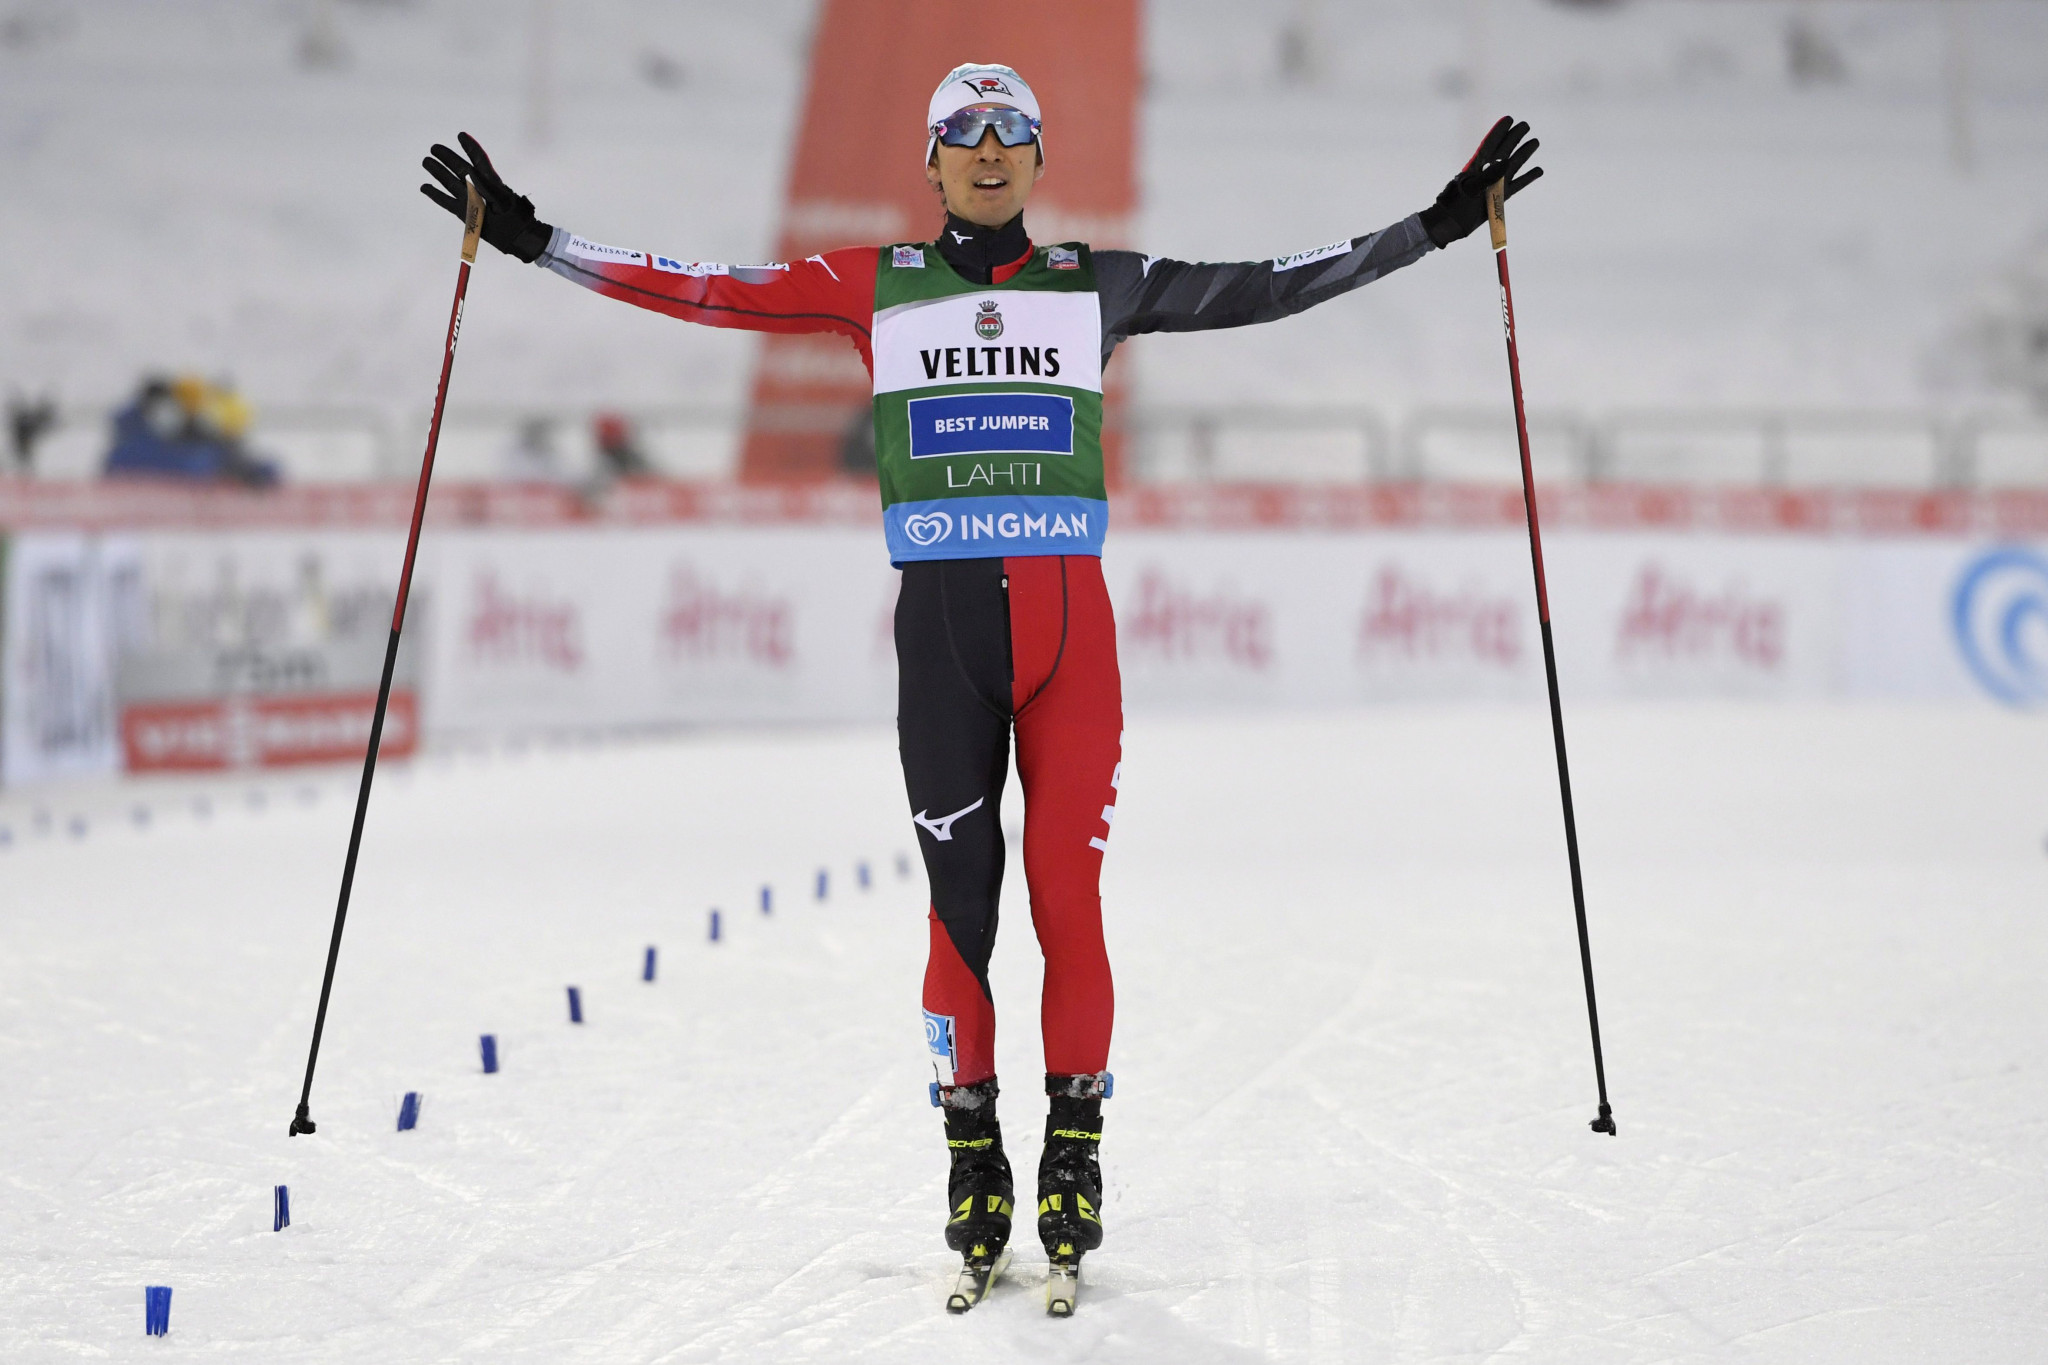 Watabe draws level with Ogiwara on 19 World Cup wins after superb showing in Lahti